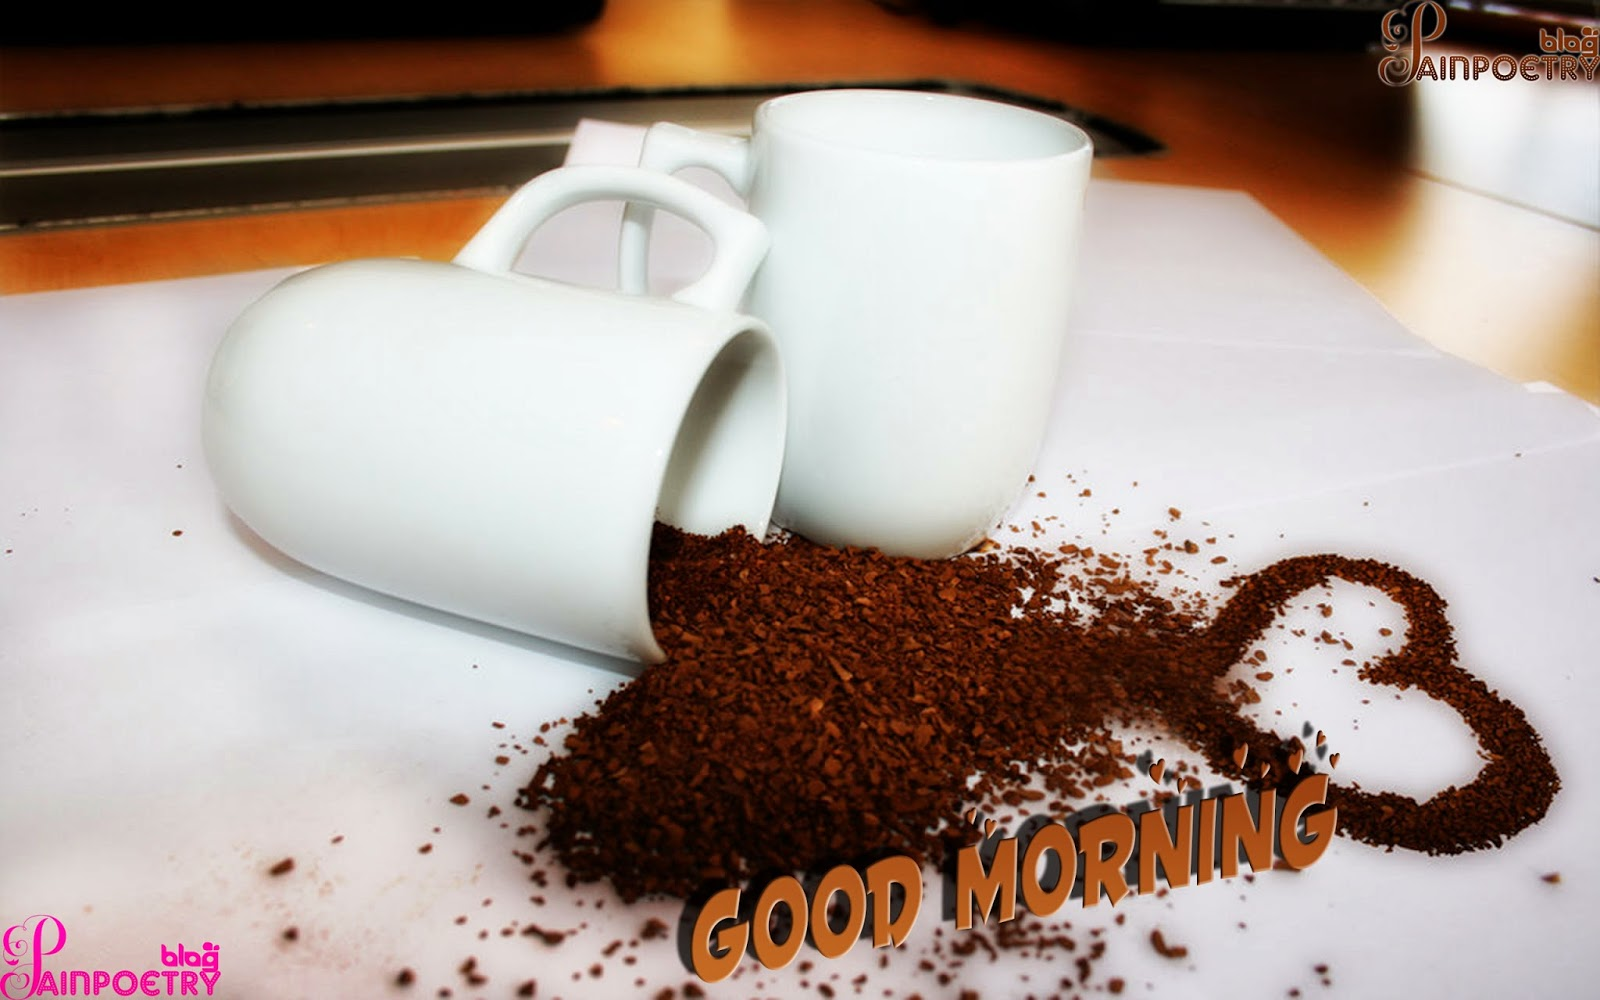 Good-Morning-Wishes-Wallpaper-With-Droped-Tea-Image-HD